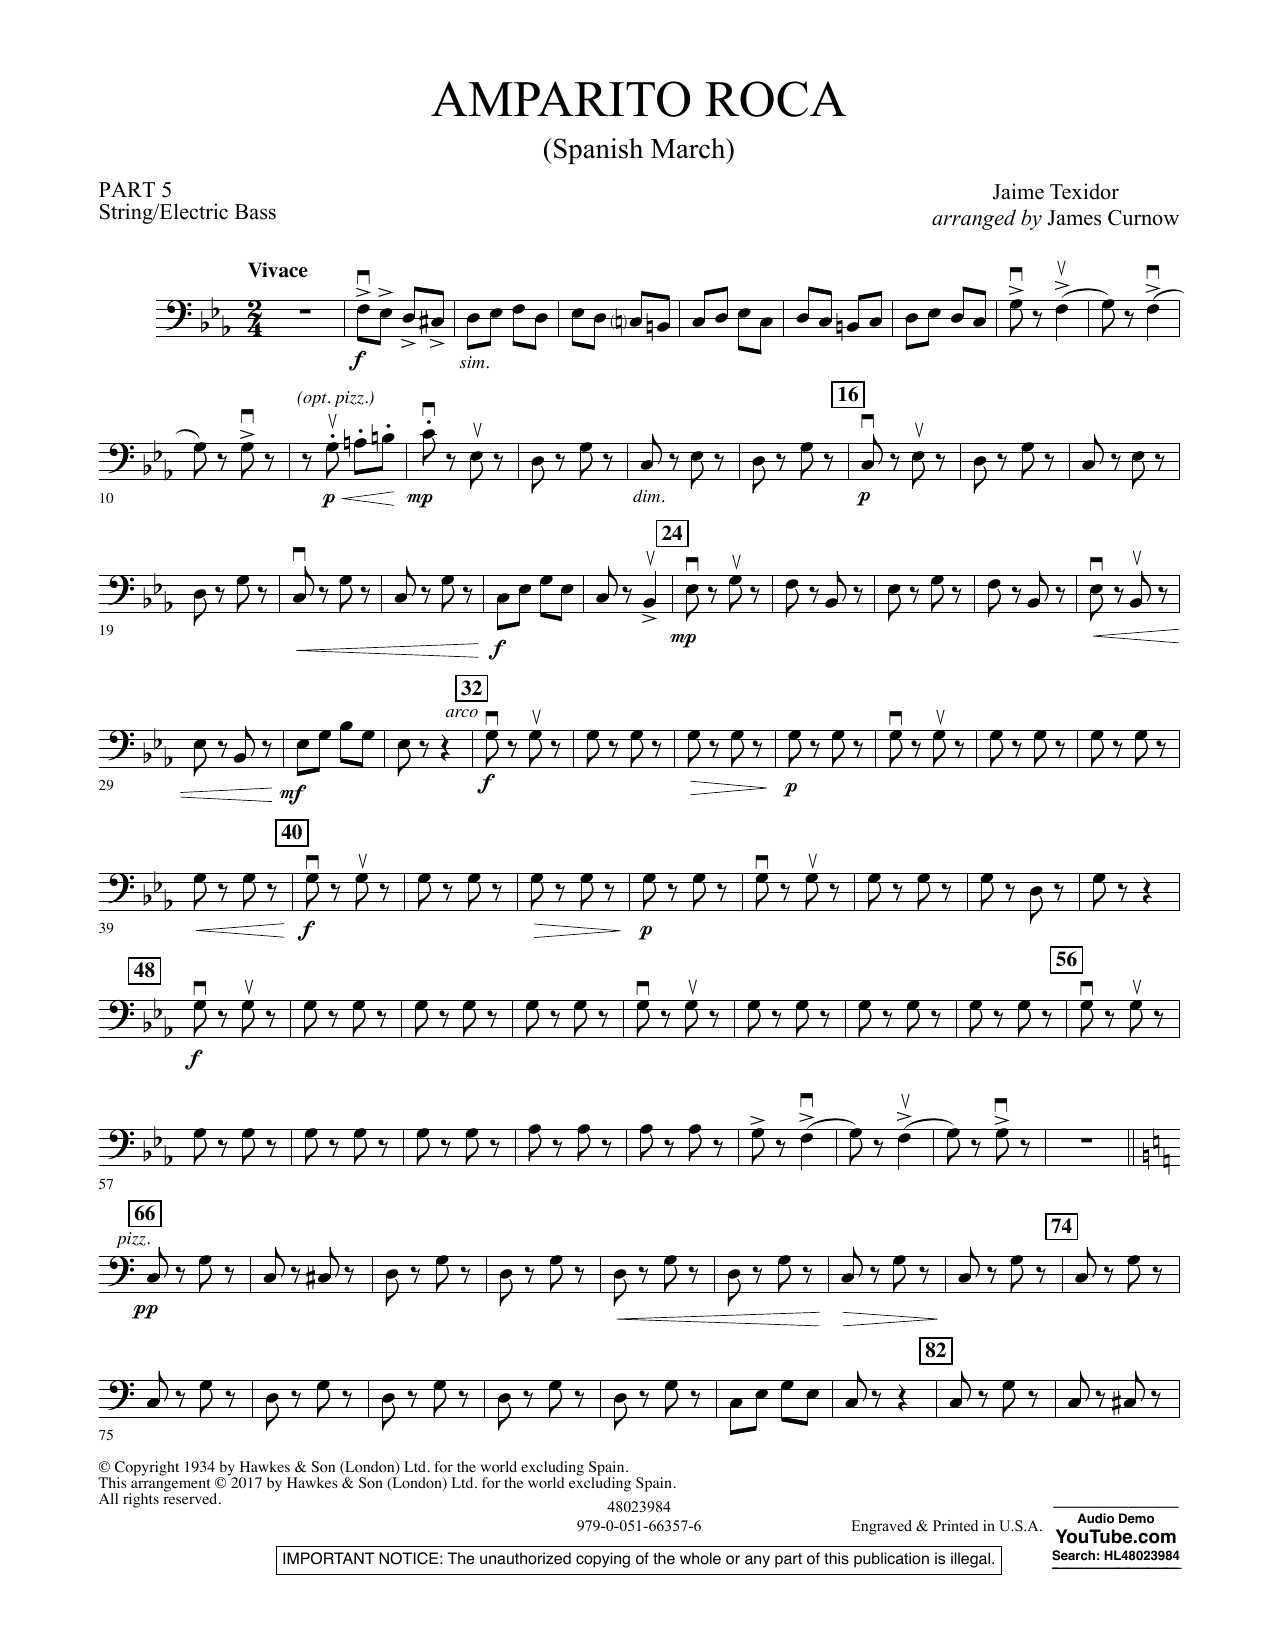 Amparito Roca (Spanish March) - Pt.5 - String/Electric Bass Sheet Music